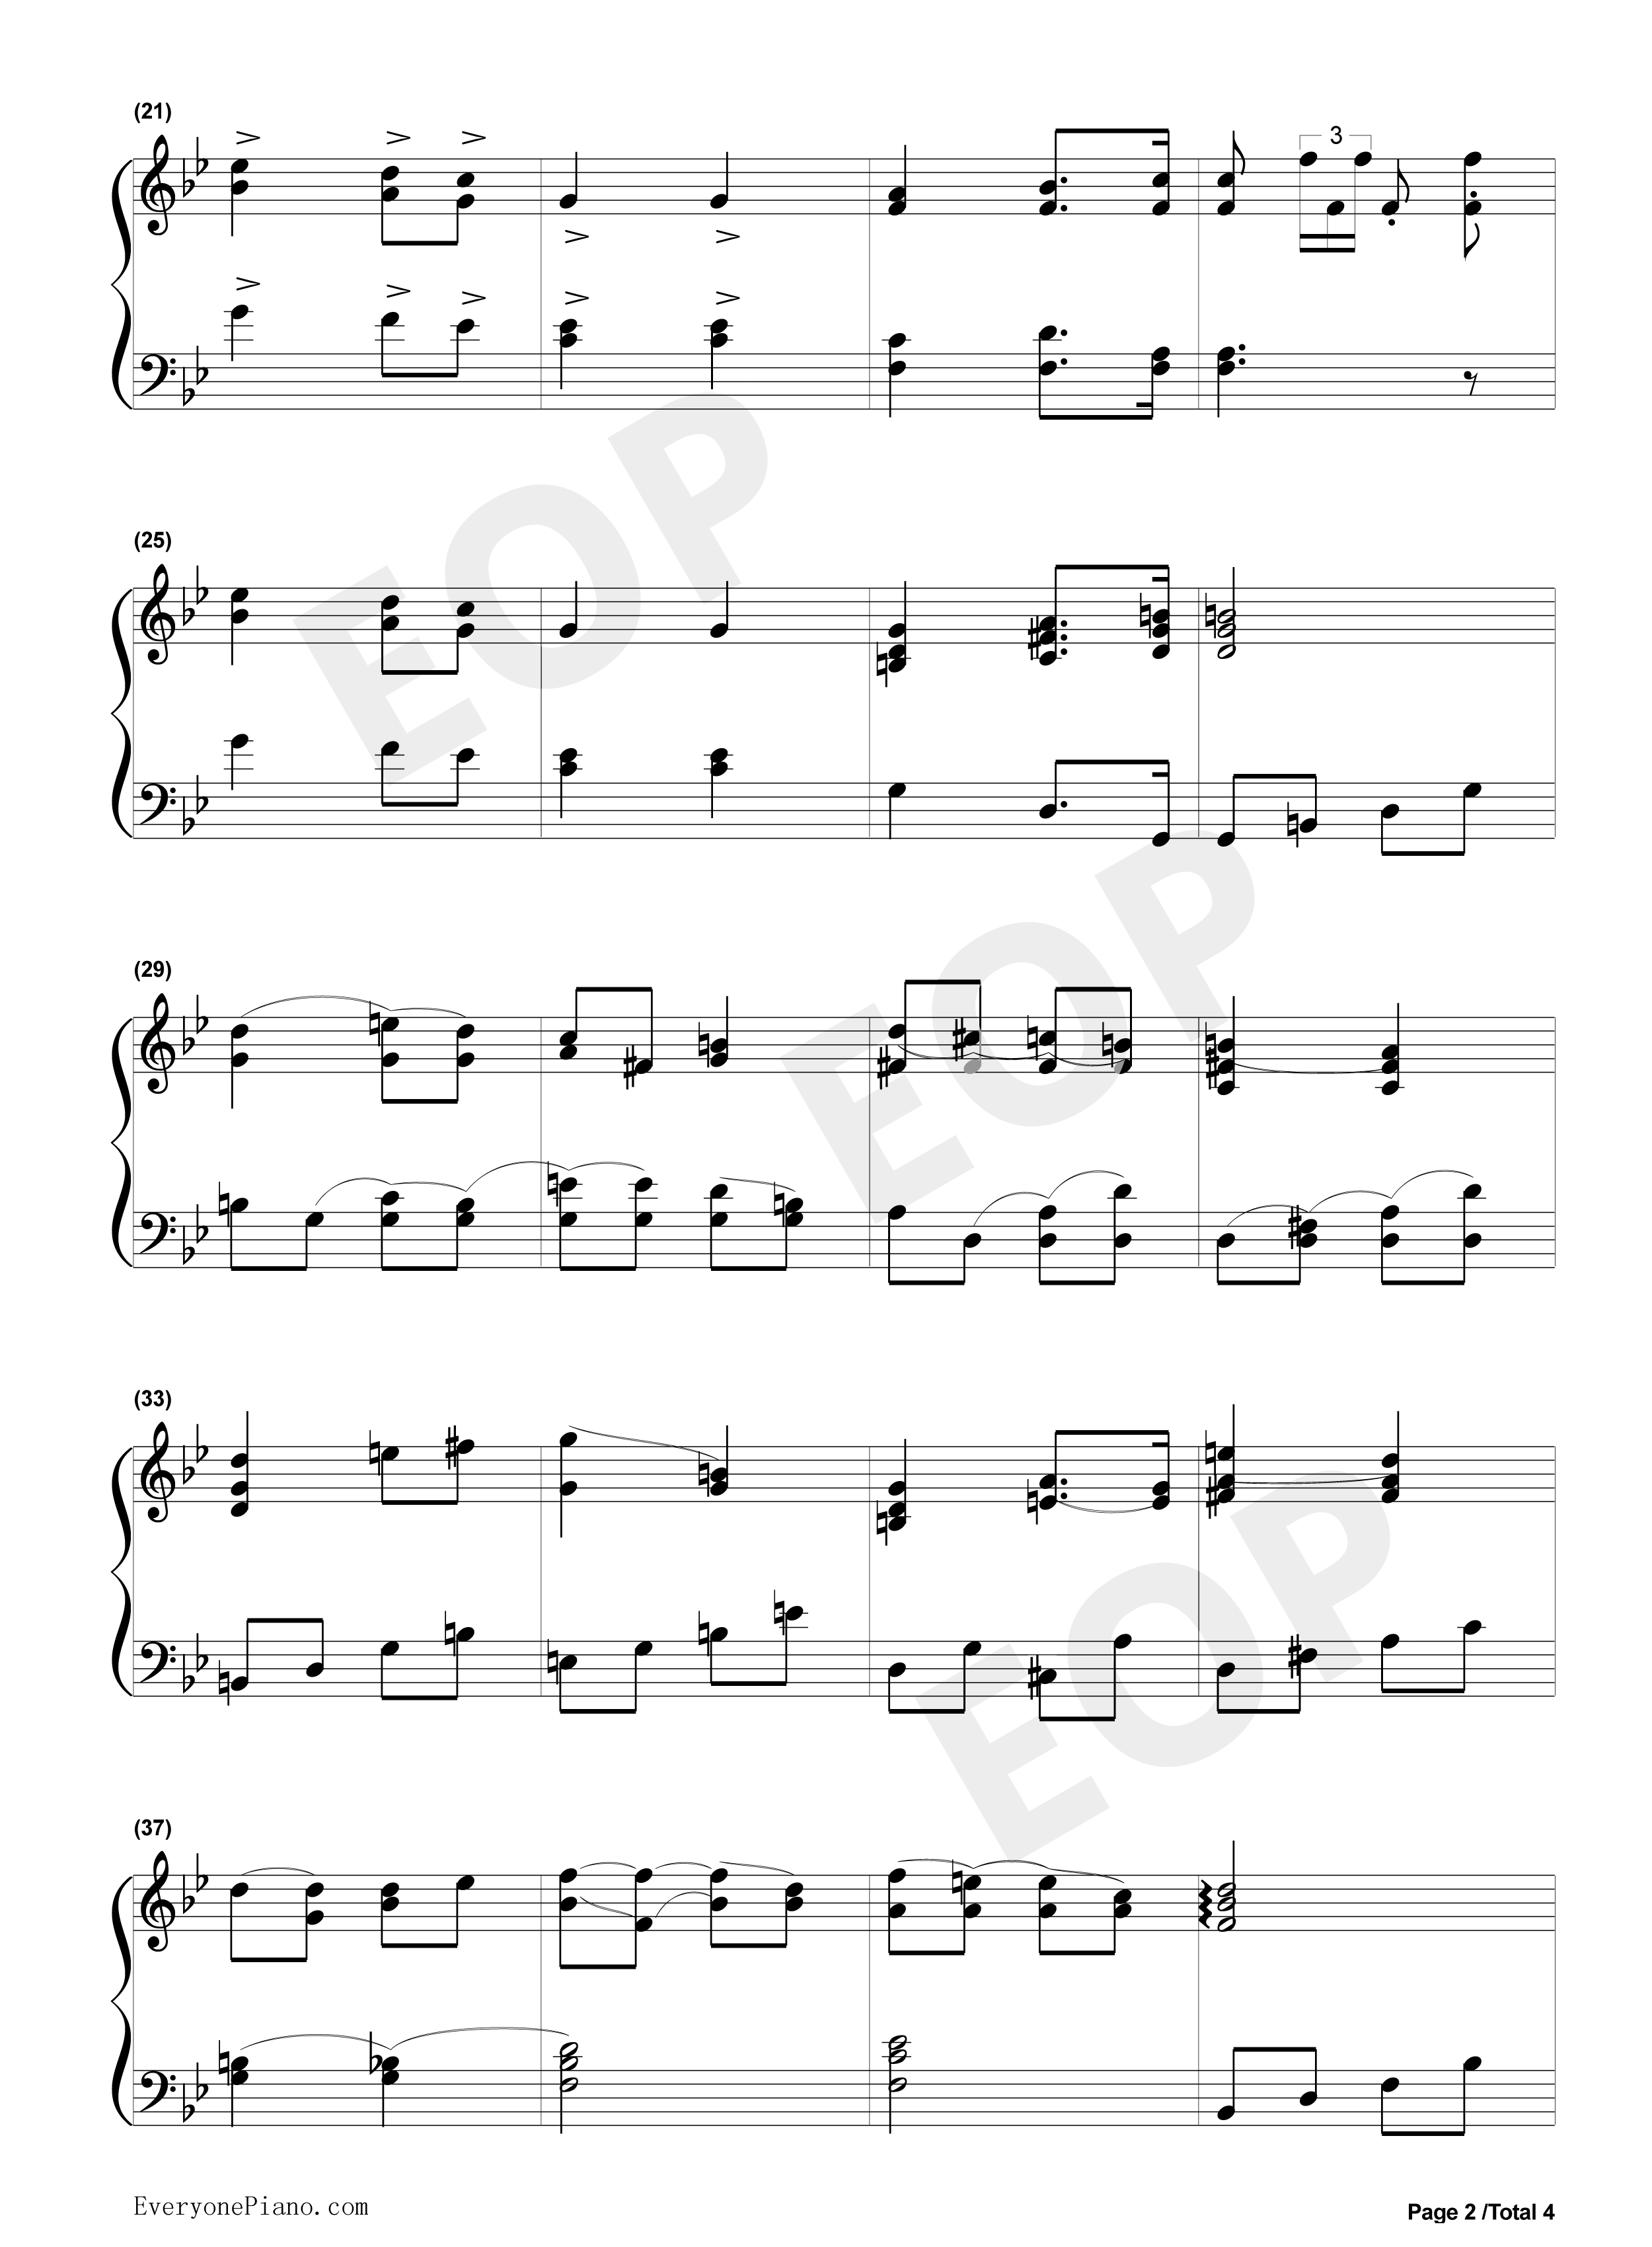 Wedding march richard wagner stave preview 2 free piano sheet listen now print sheet wedding march richard wagner stave preview 2 hexwebz Image collections